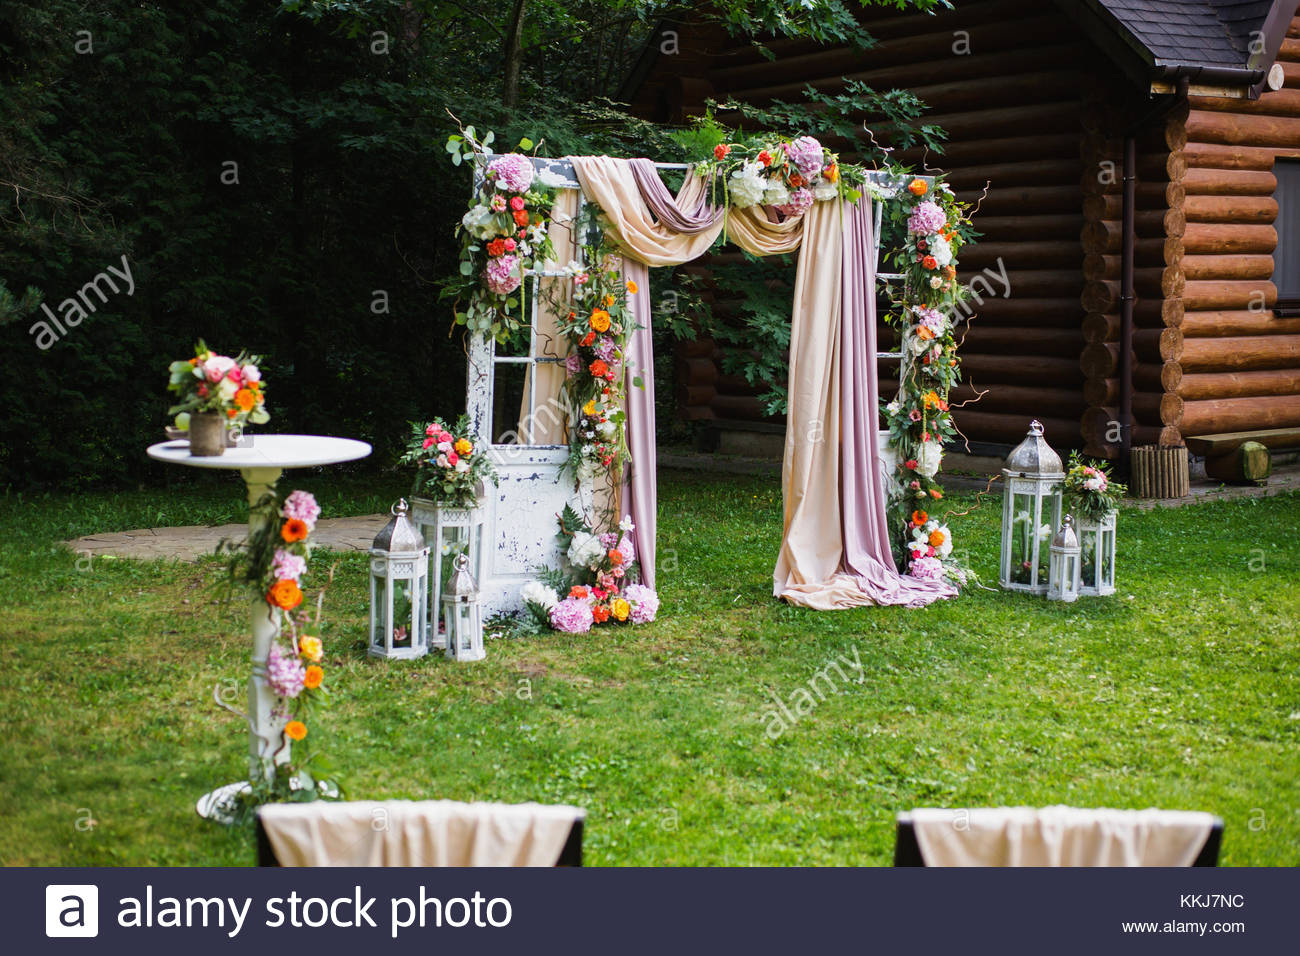 Gorgeous Wedding Ceremonies: Beautiful Wedding Ceremony Outdoors. Decorated Chairs